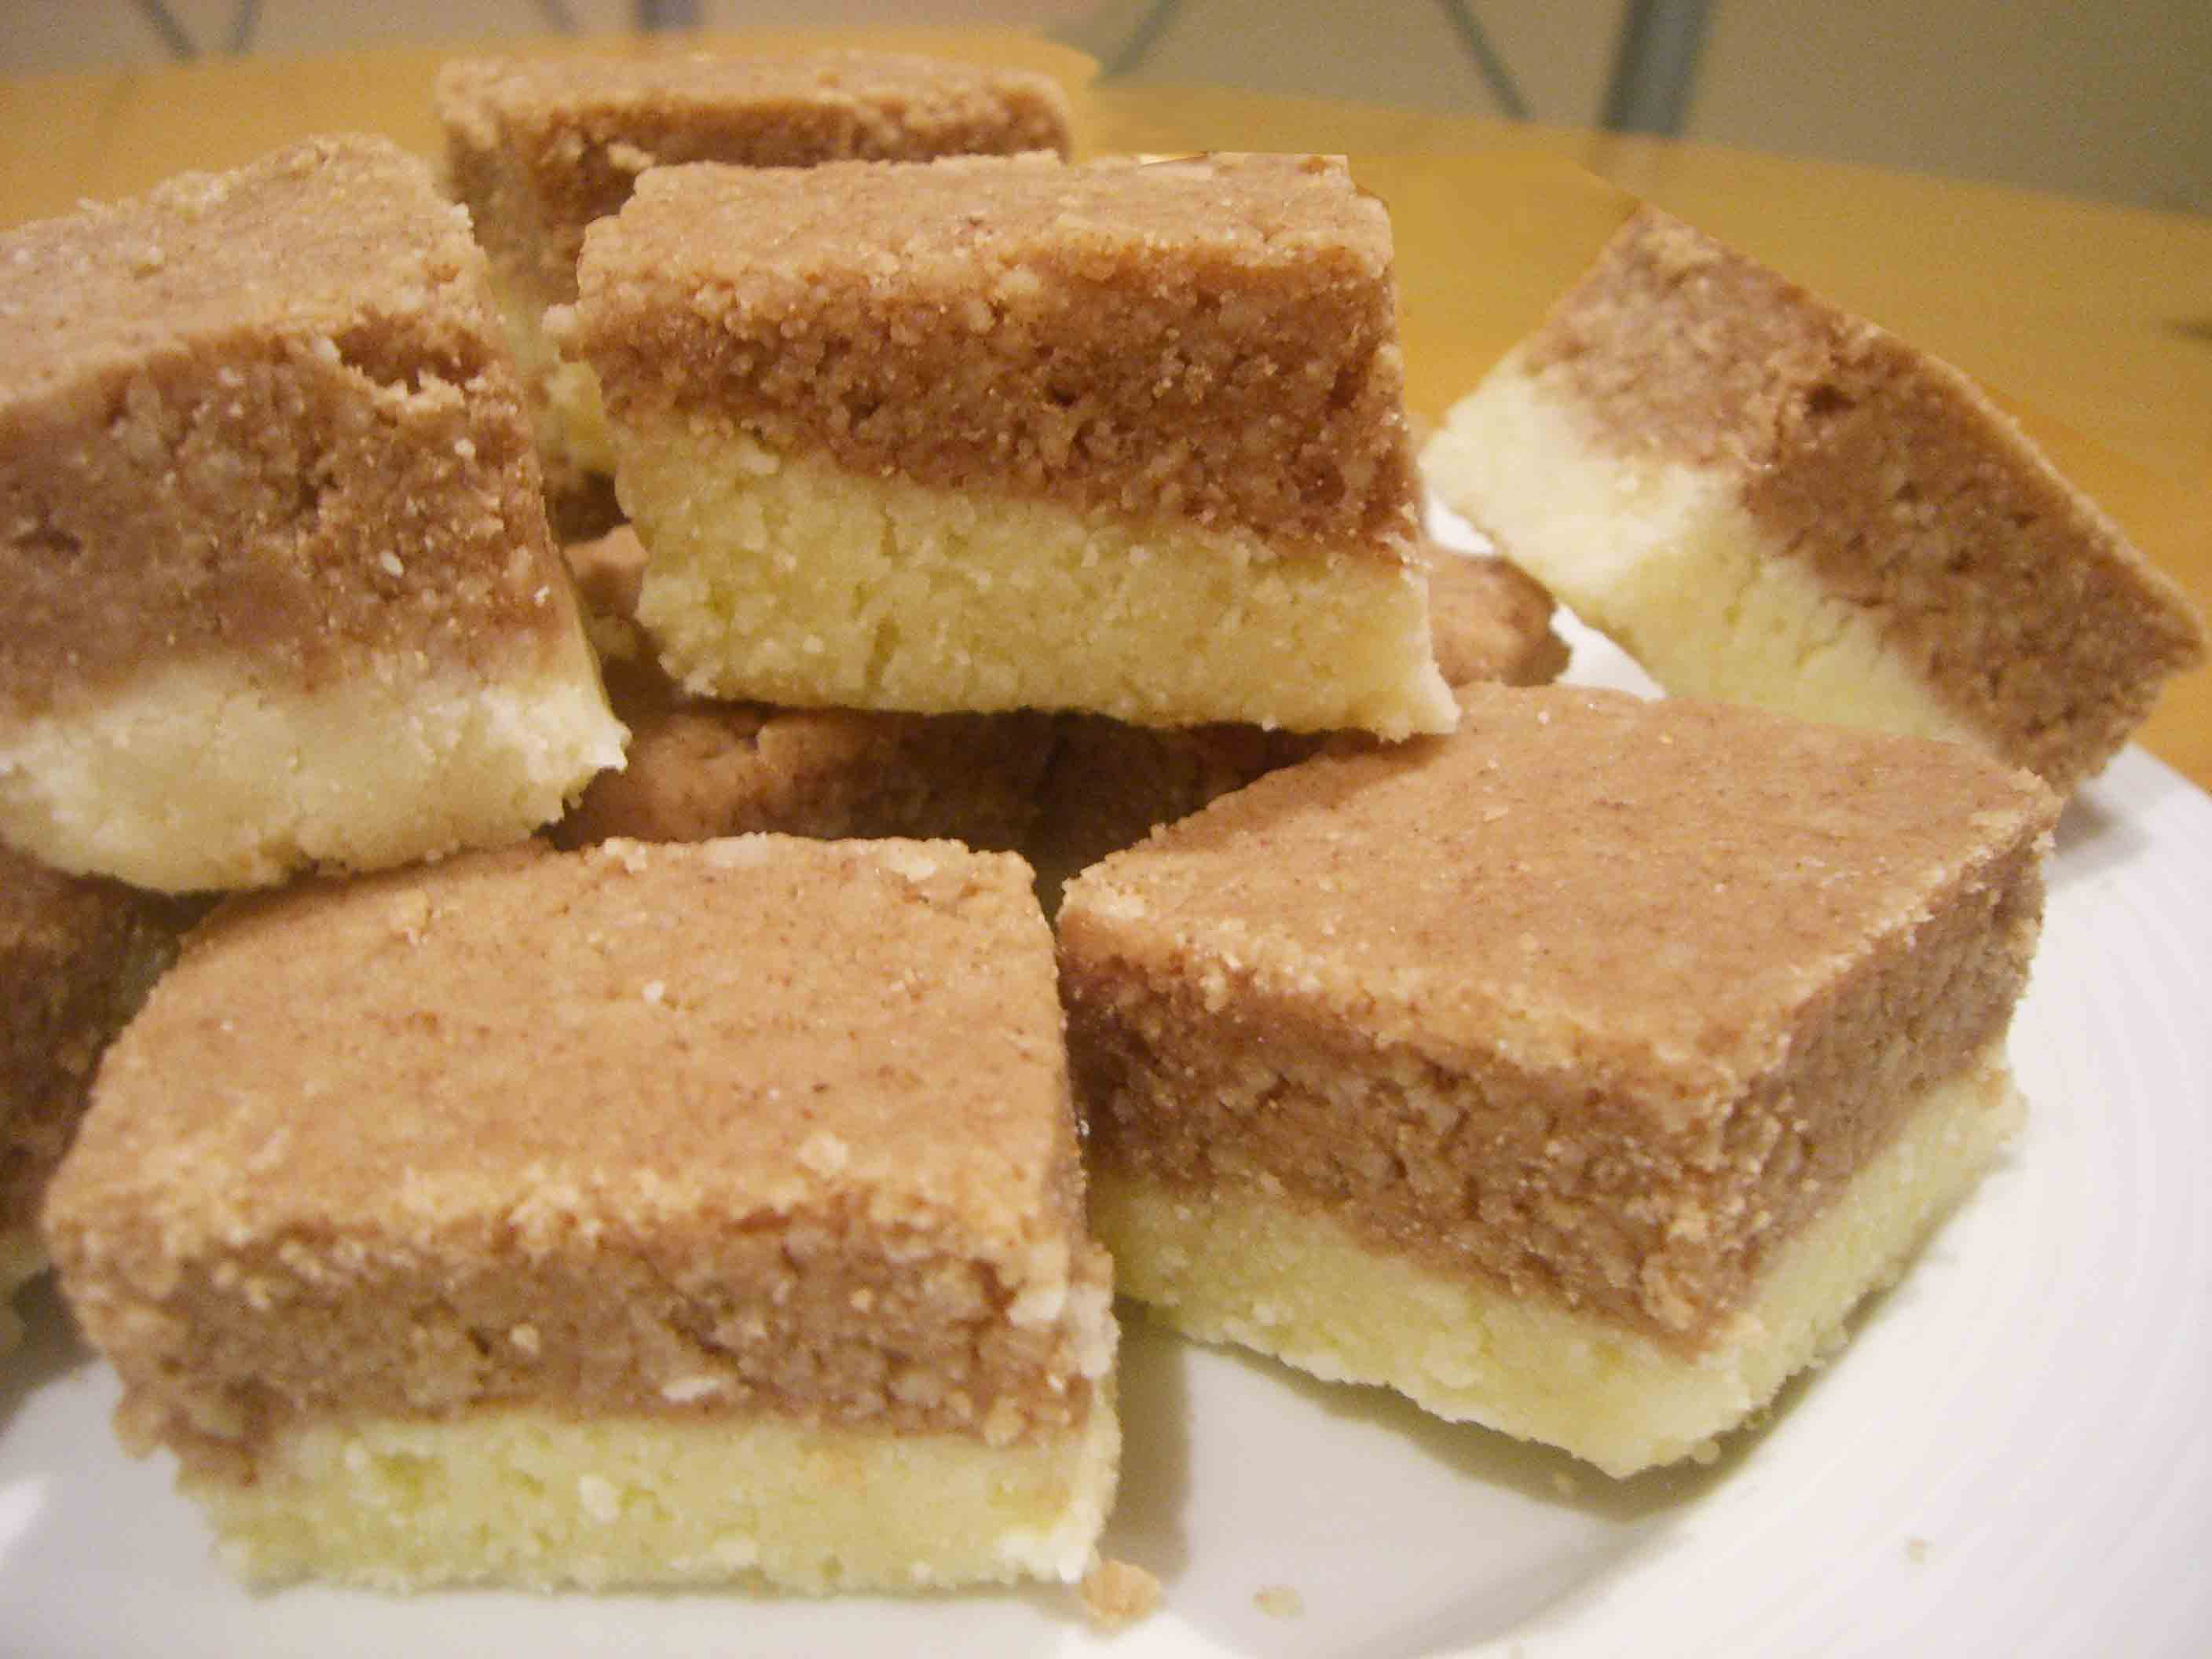 Choclate burfi, anyone?